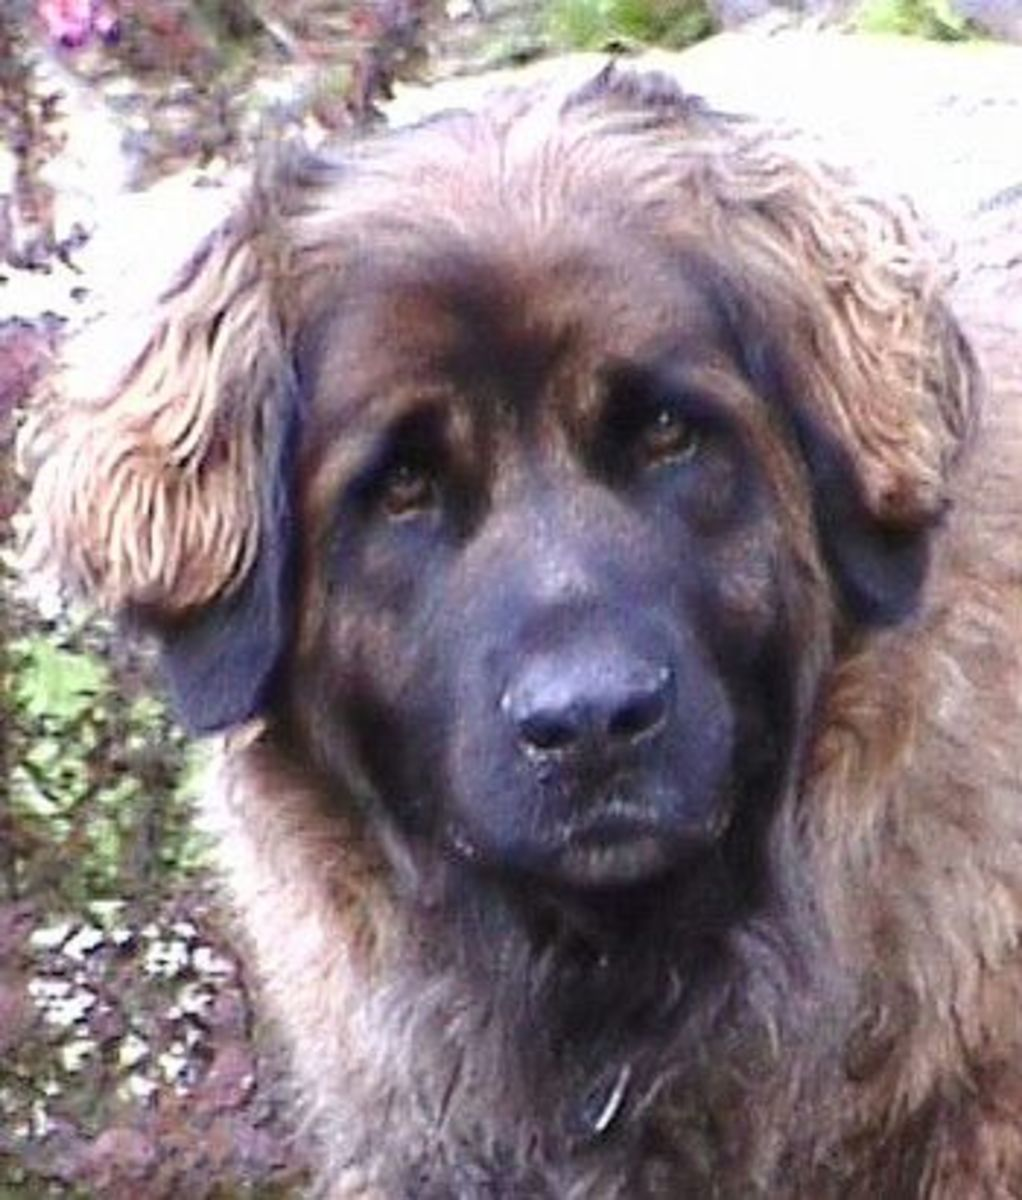 The Leonberger is one of the few giant dogs that does not drool much.